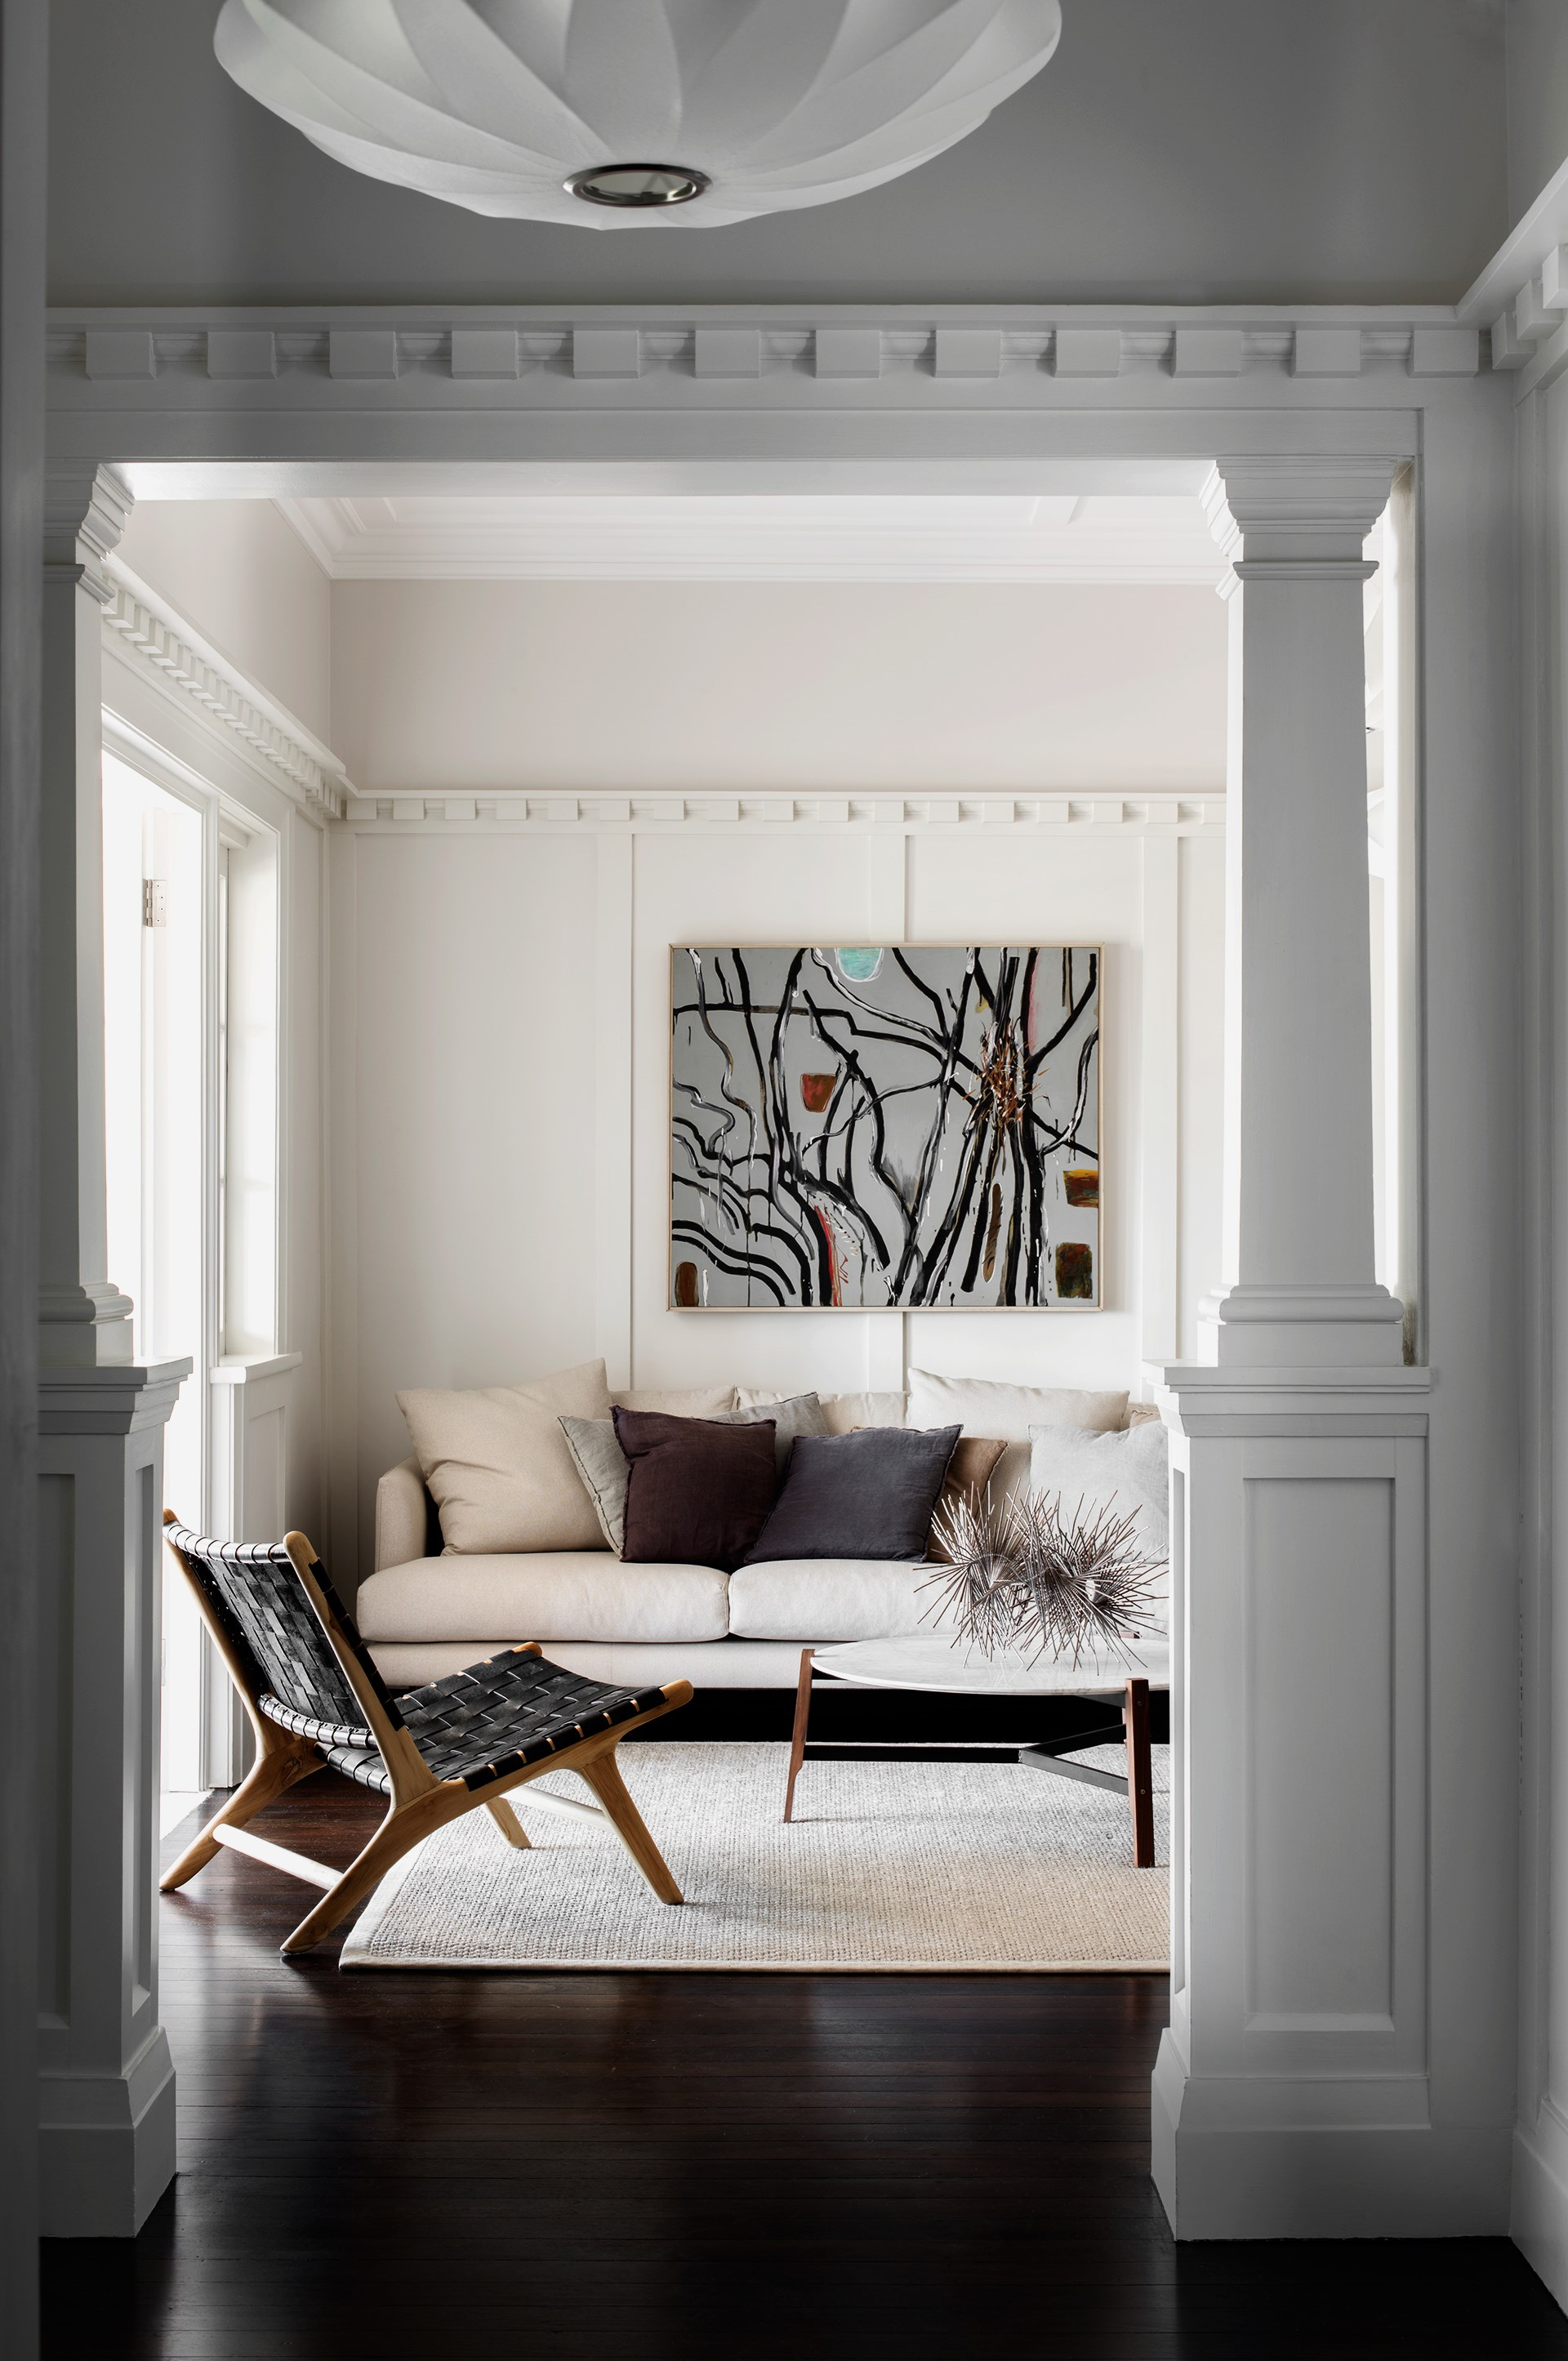 The heritage mouldings of this [iconic Palm Beach sandstone and timber bungalow](http://www.homestolove.com.au/sandstone-house-restored-to-former-glory-3731) have been restored to their former glory. *Photo: Nicholas Watt*